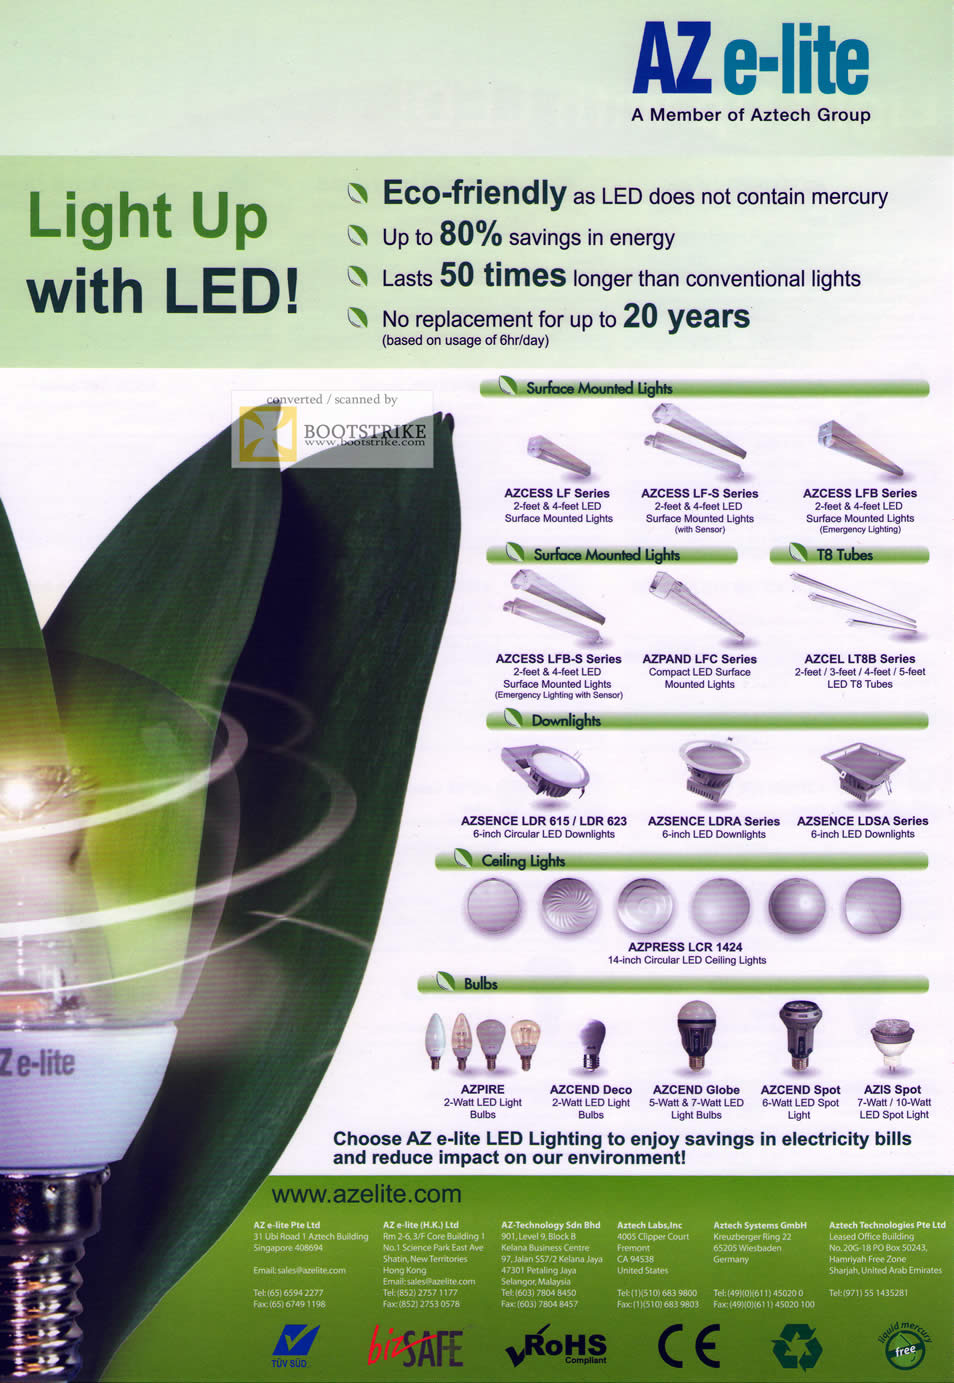 PC Show 2011 price list image brochure of Convergent Aztech AZ E-Lite LED Bulbs Eco Friendly